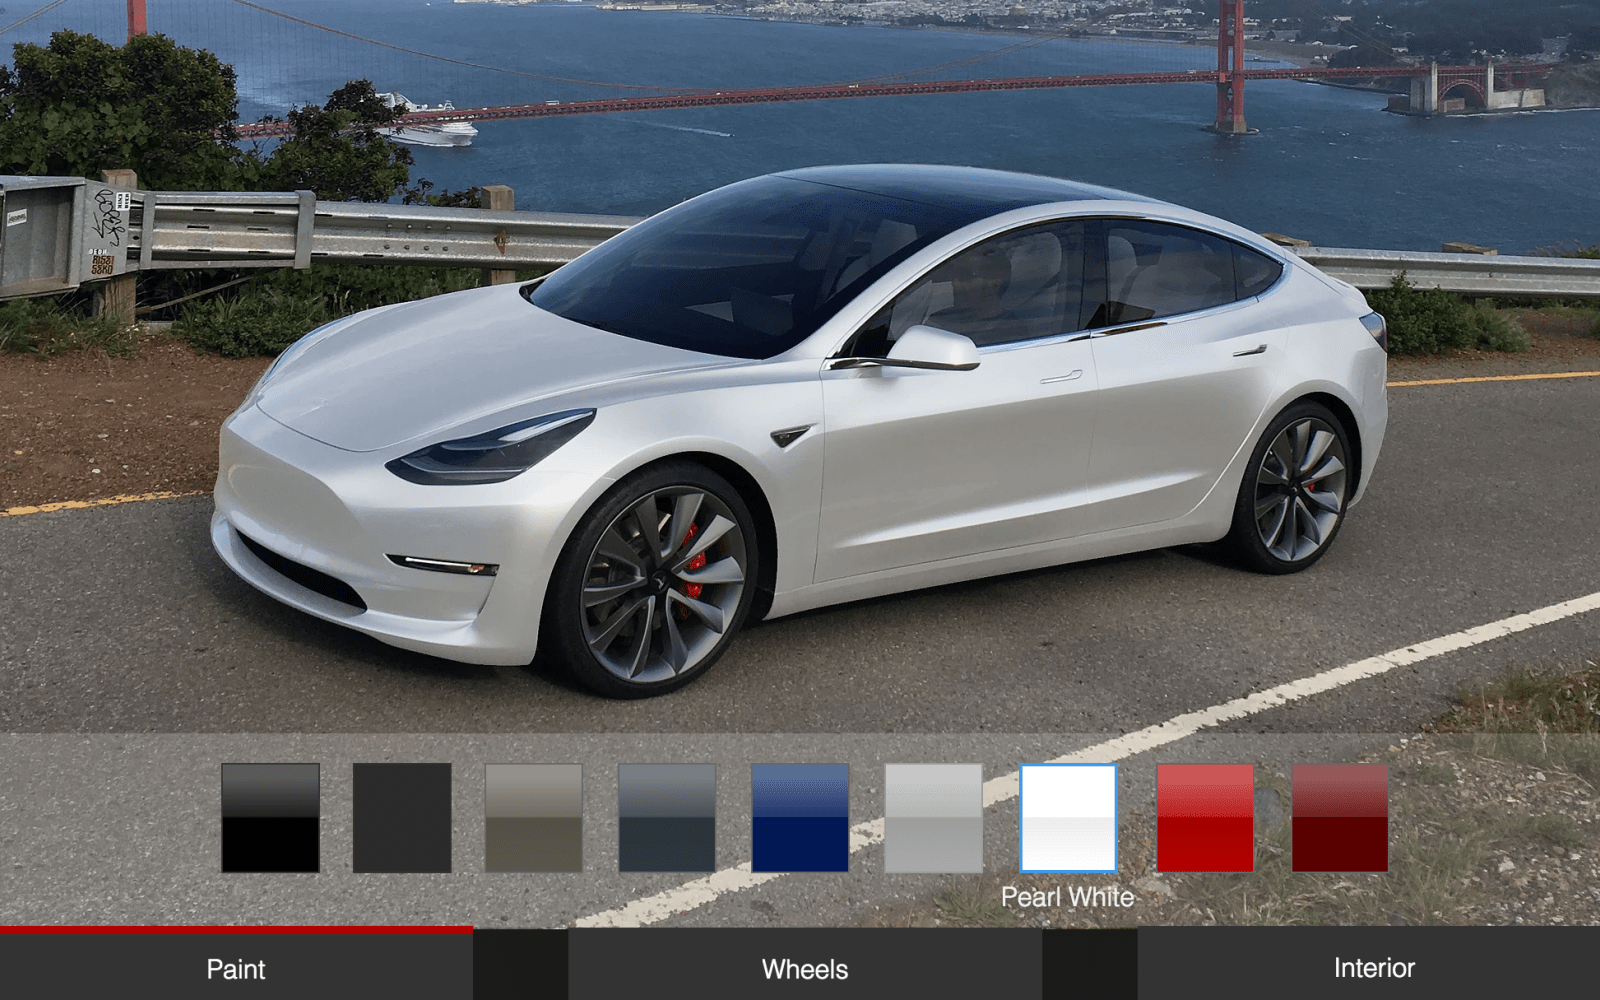 Tesla Model 3 average sale price and budget to be closer to $50,000 based on latest data from